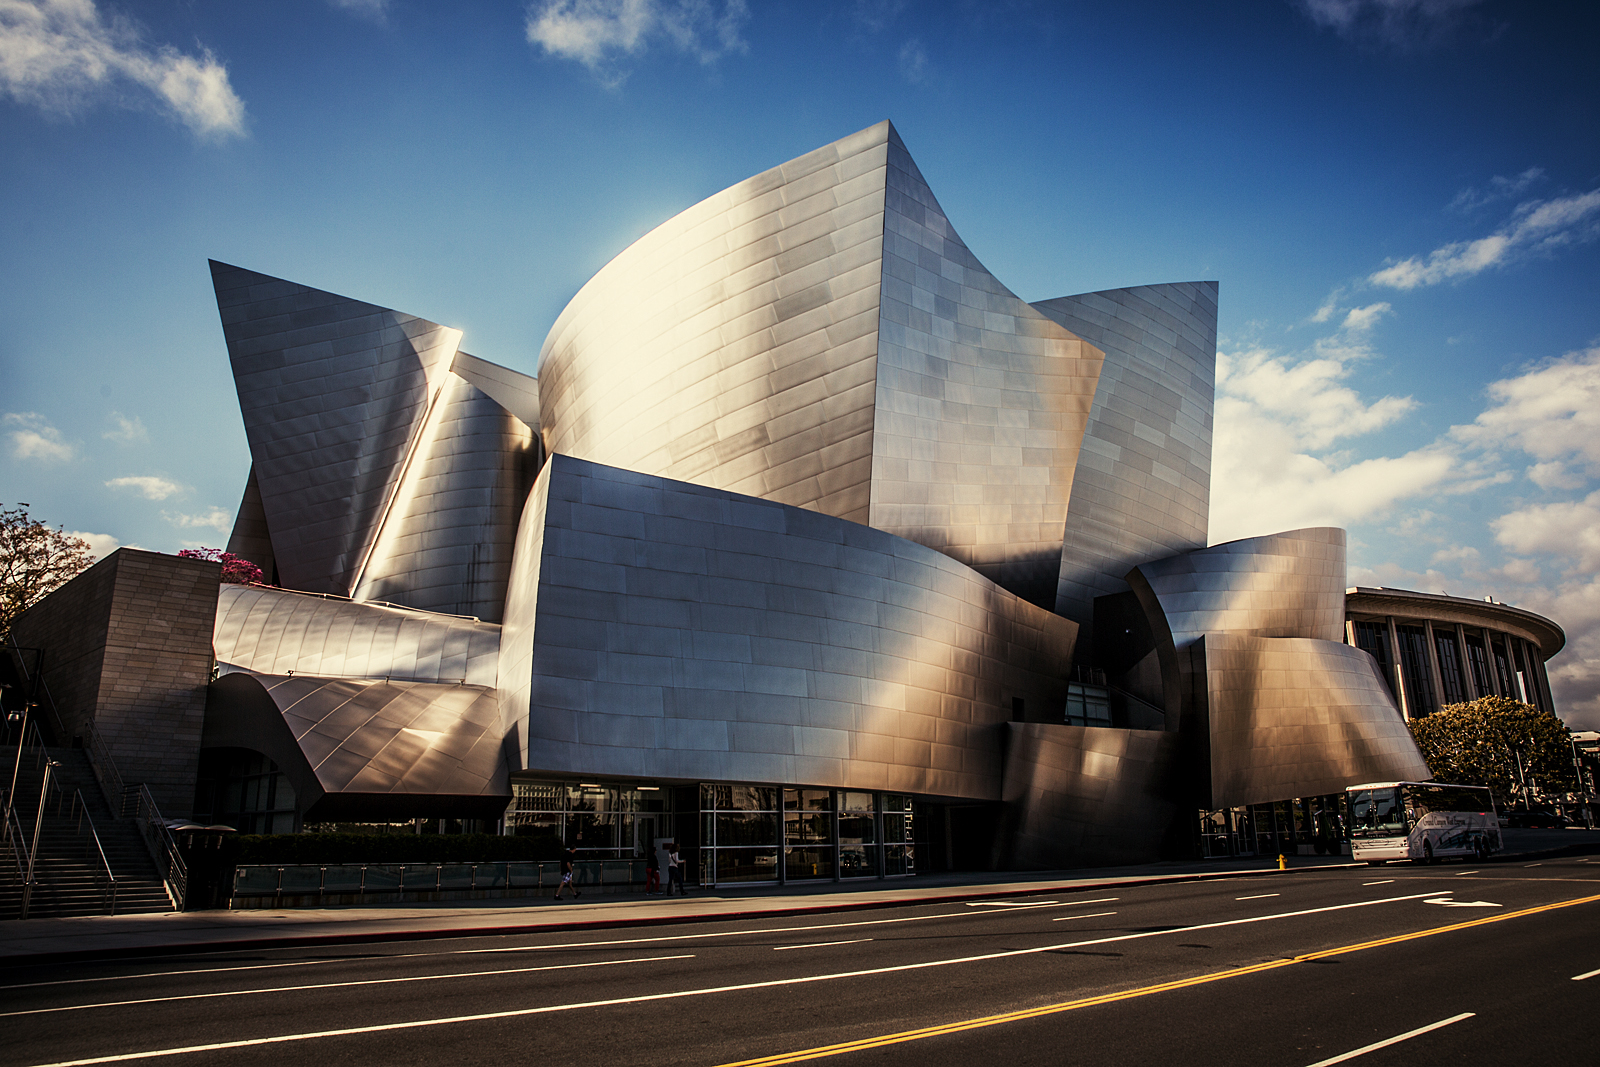 The Walt Disney Concert Hall at 111 South Grand Avenue in Downtown of Los Angeles, California, is the fourth hall of the Los Angeles Music Center and was designed by Frank Gehry. It opened on October 24, 2003. Wikipedia